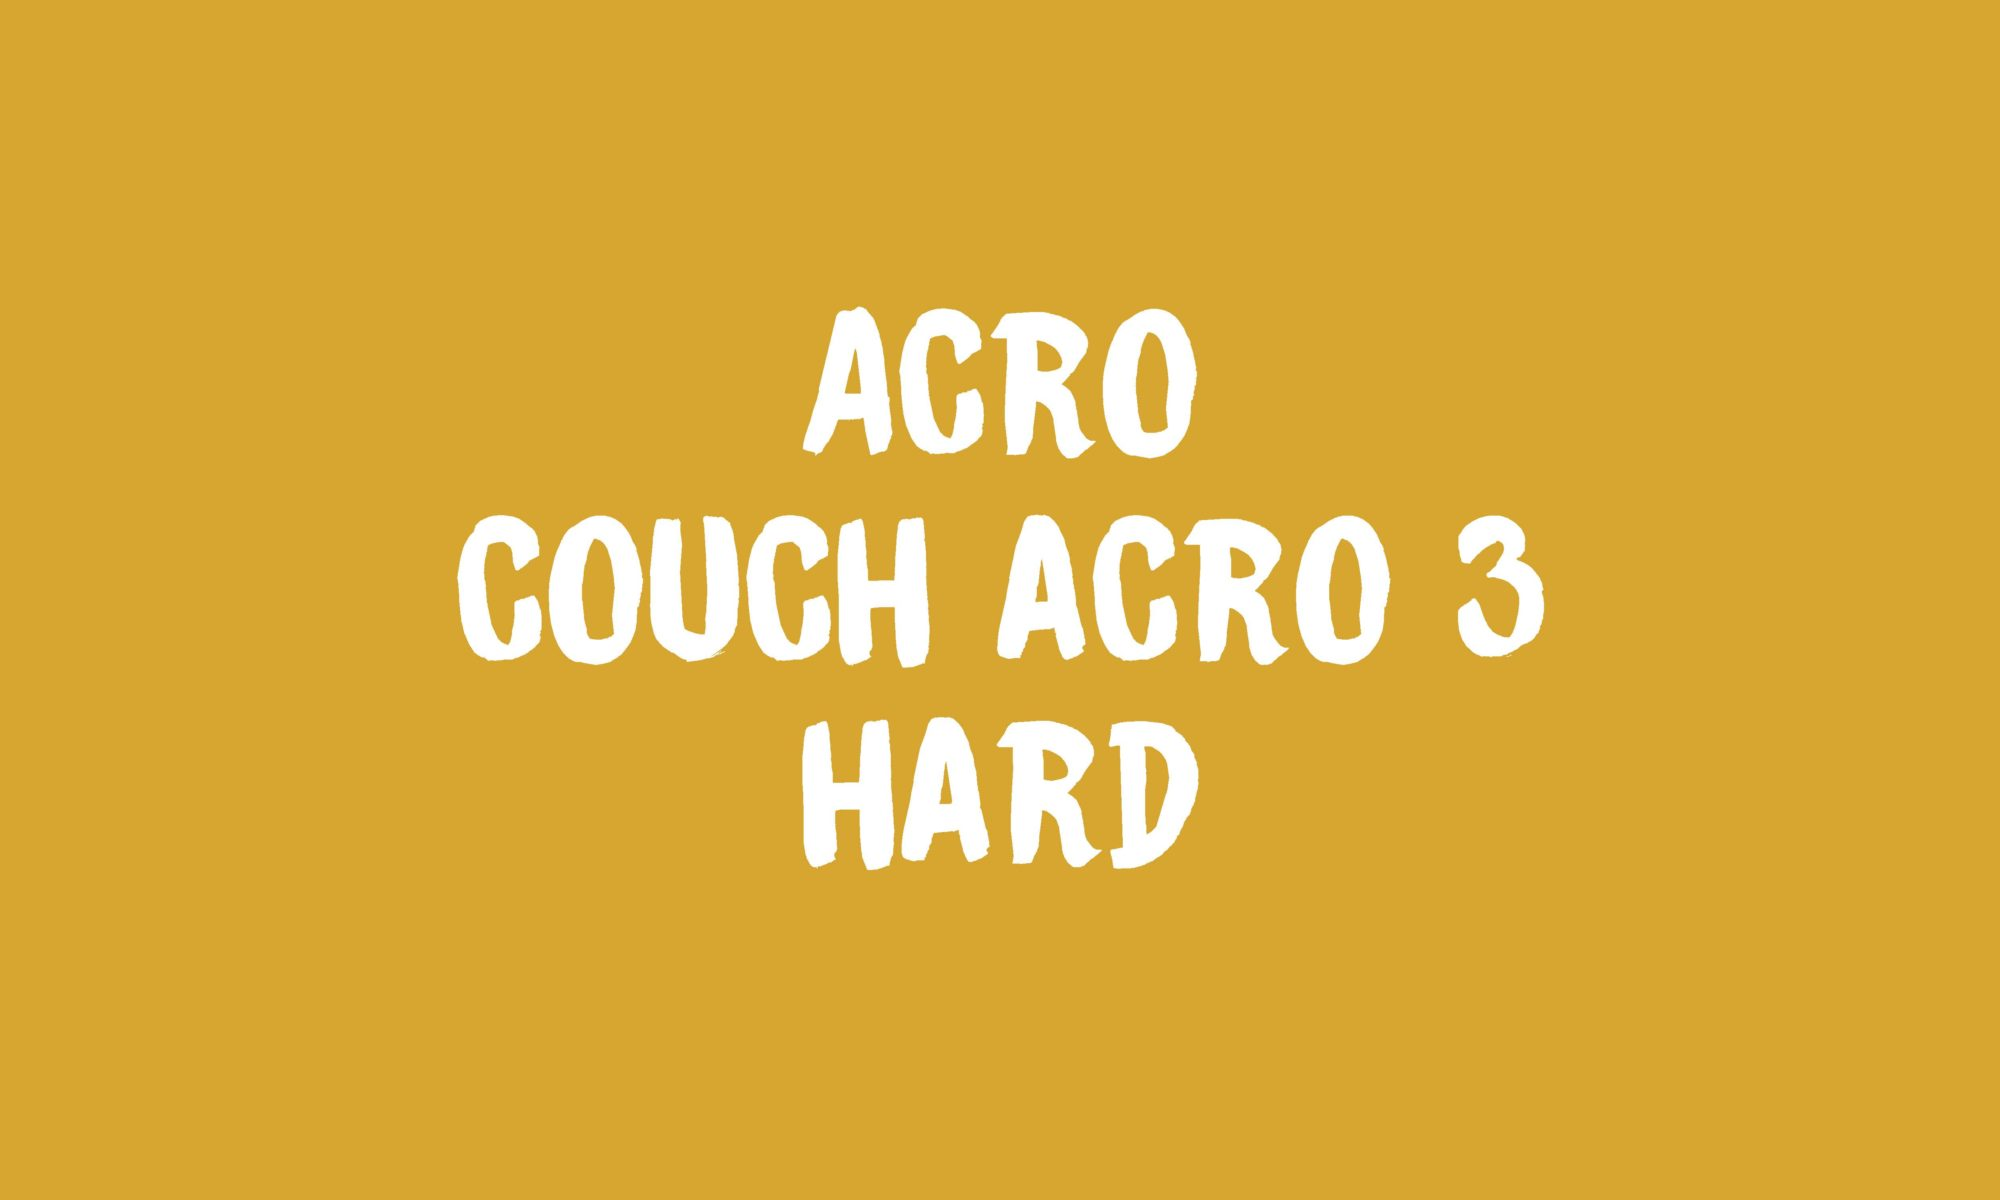 Acro Couch Acro 3 Banner